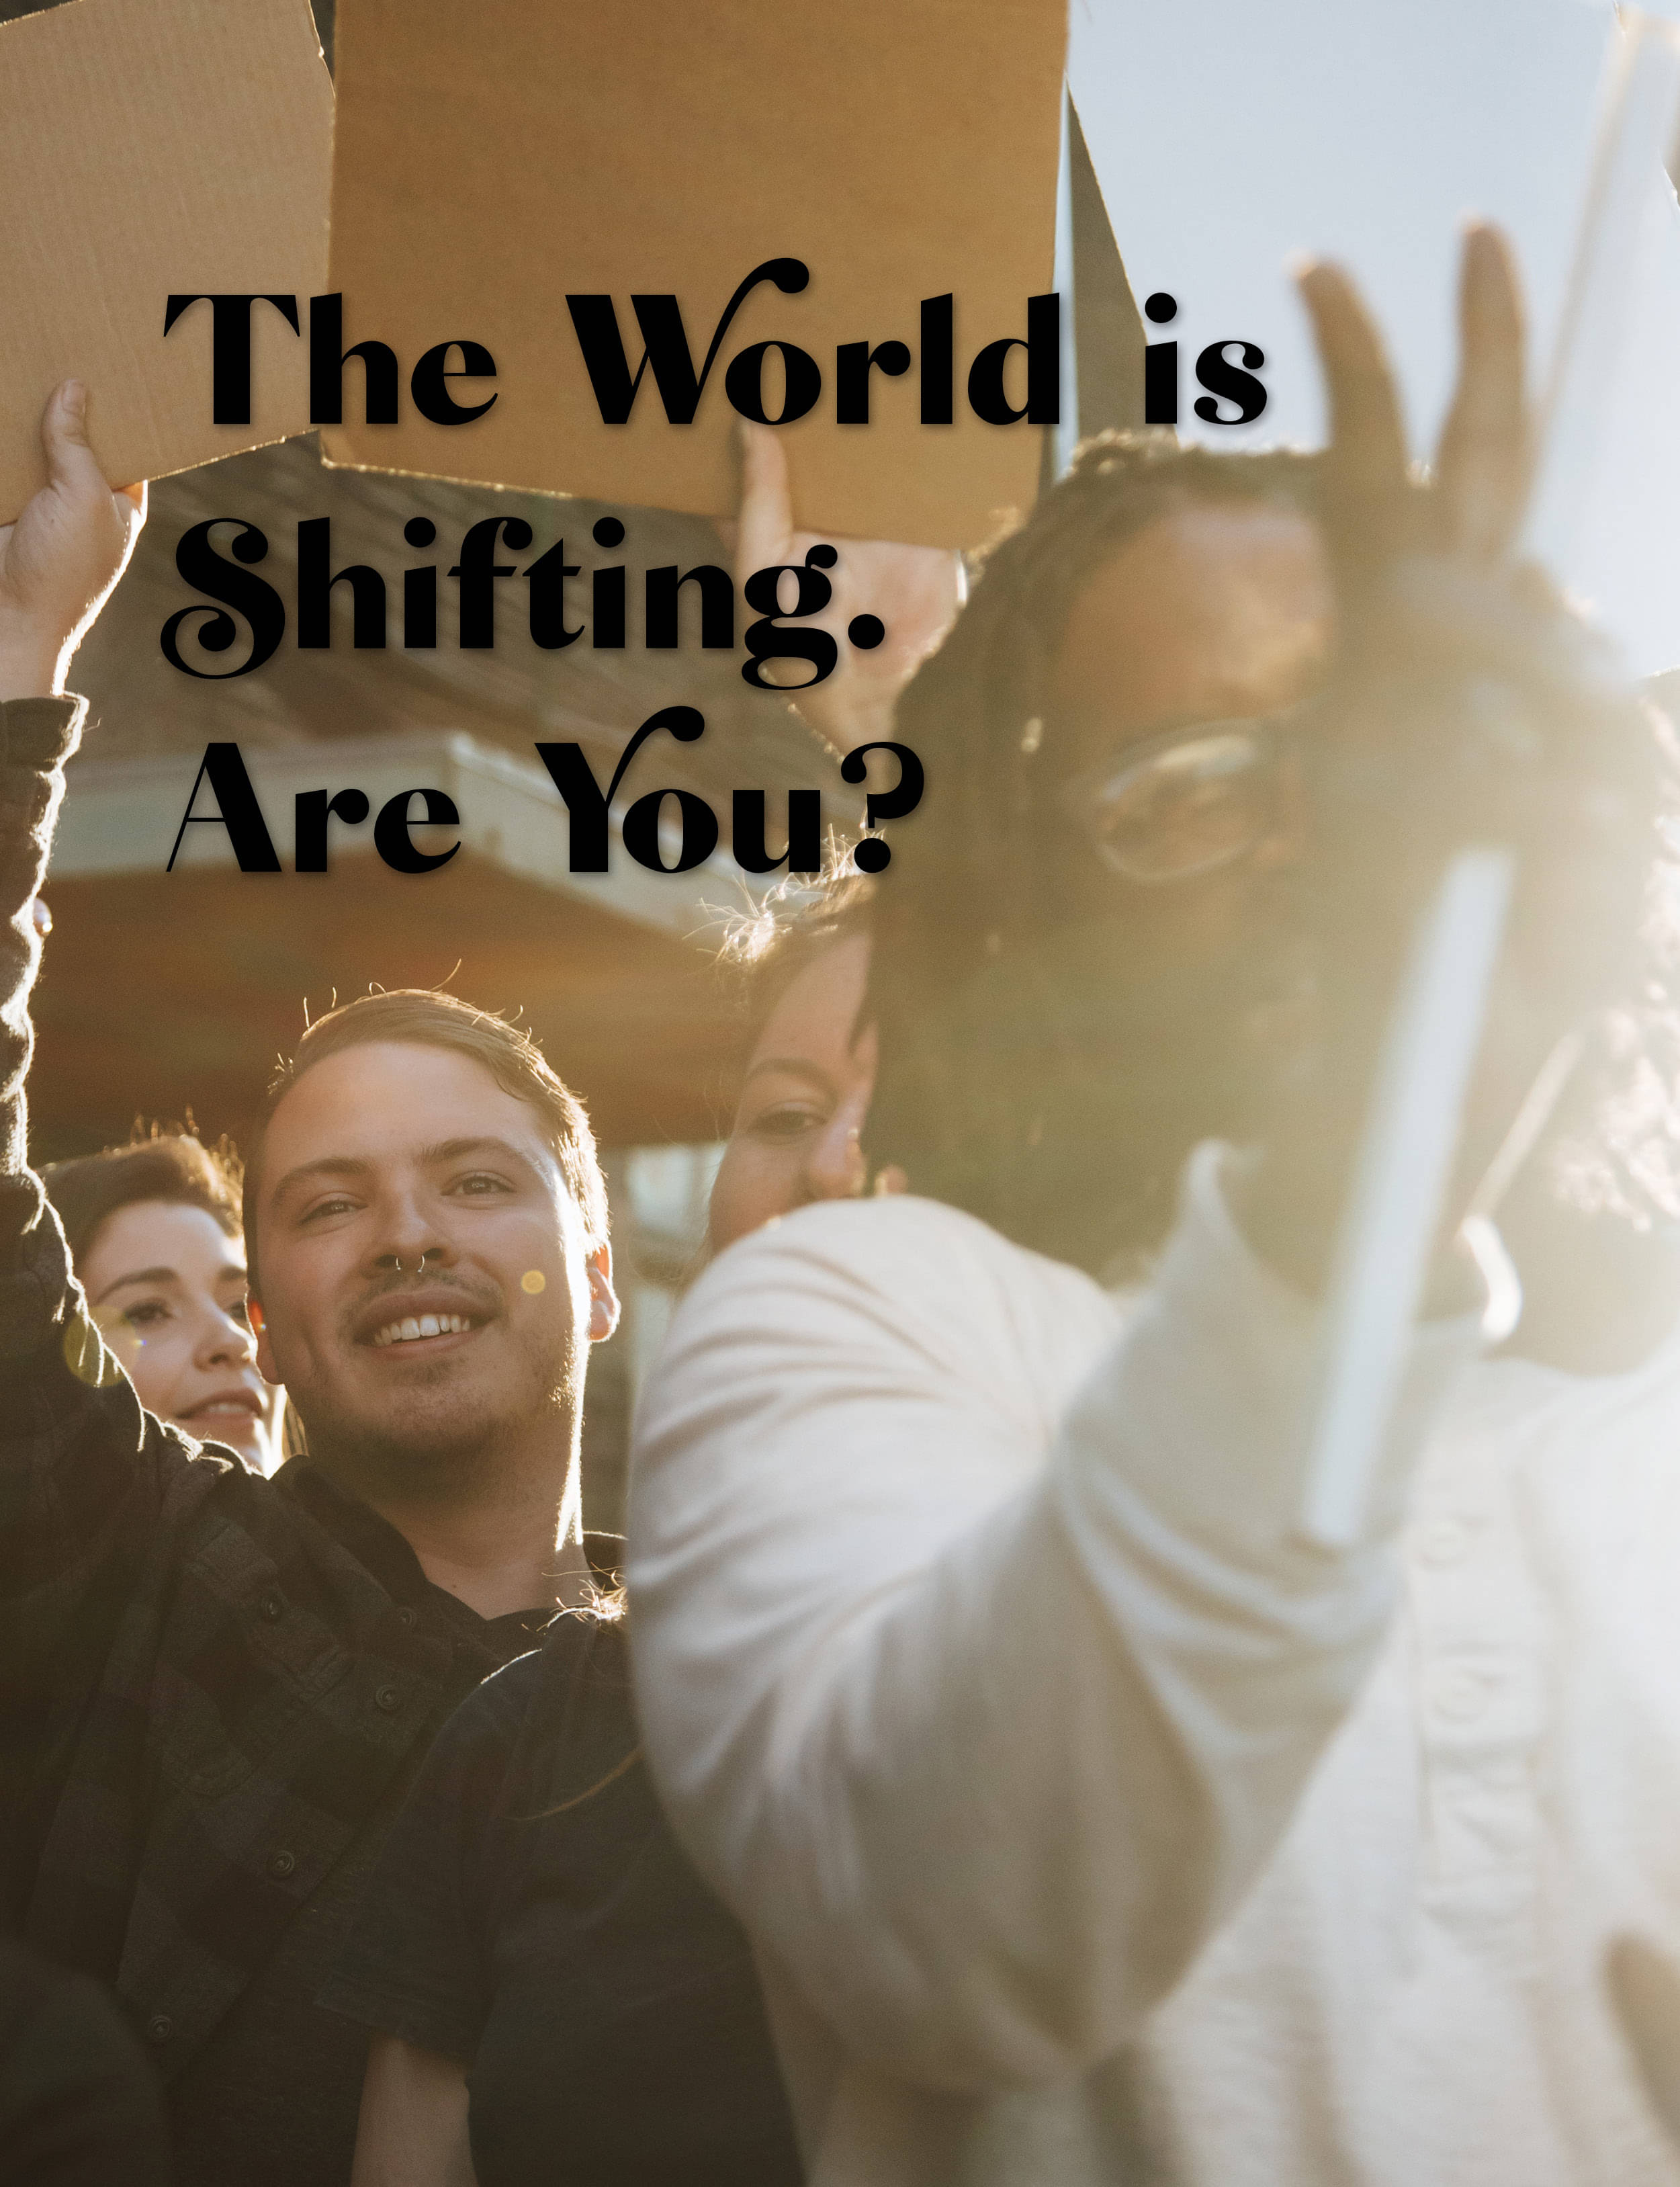 The World is Shifting Are You?